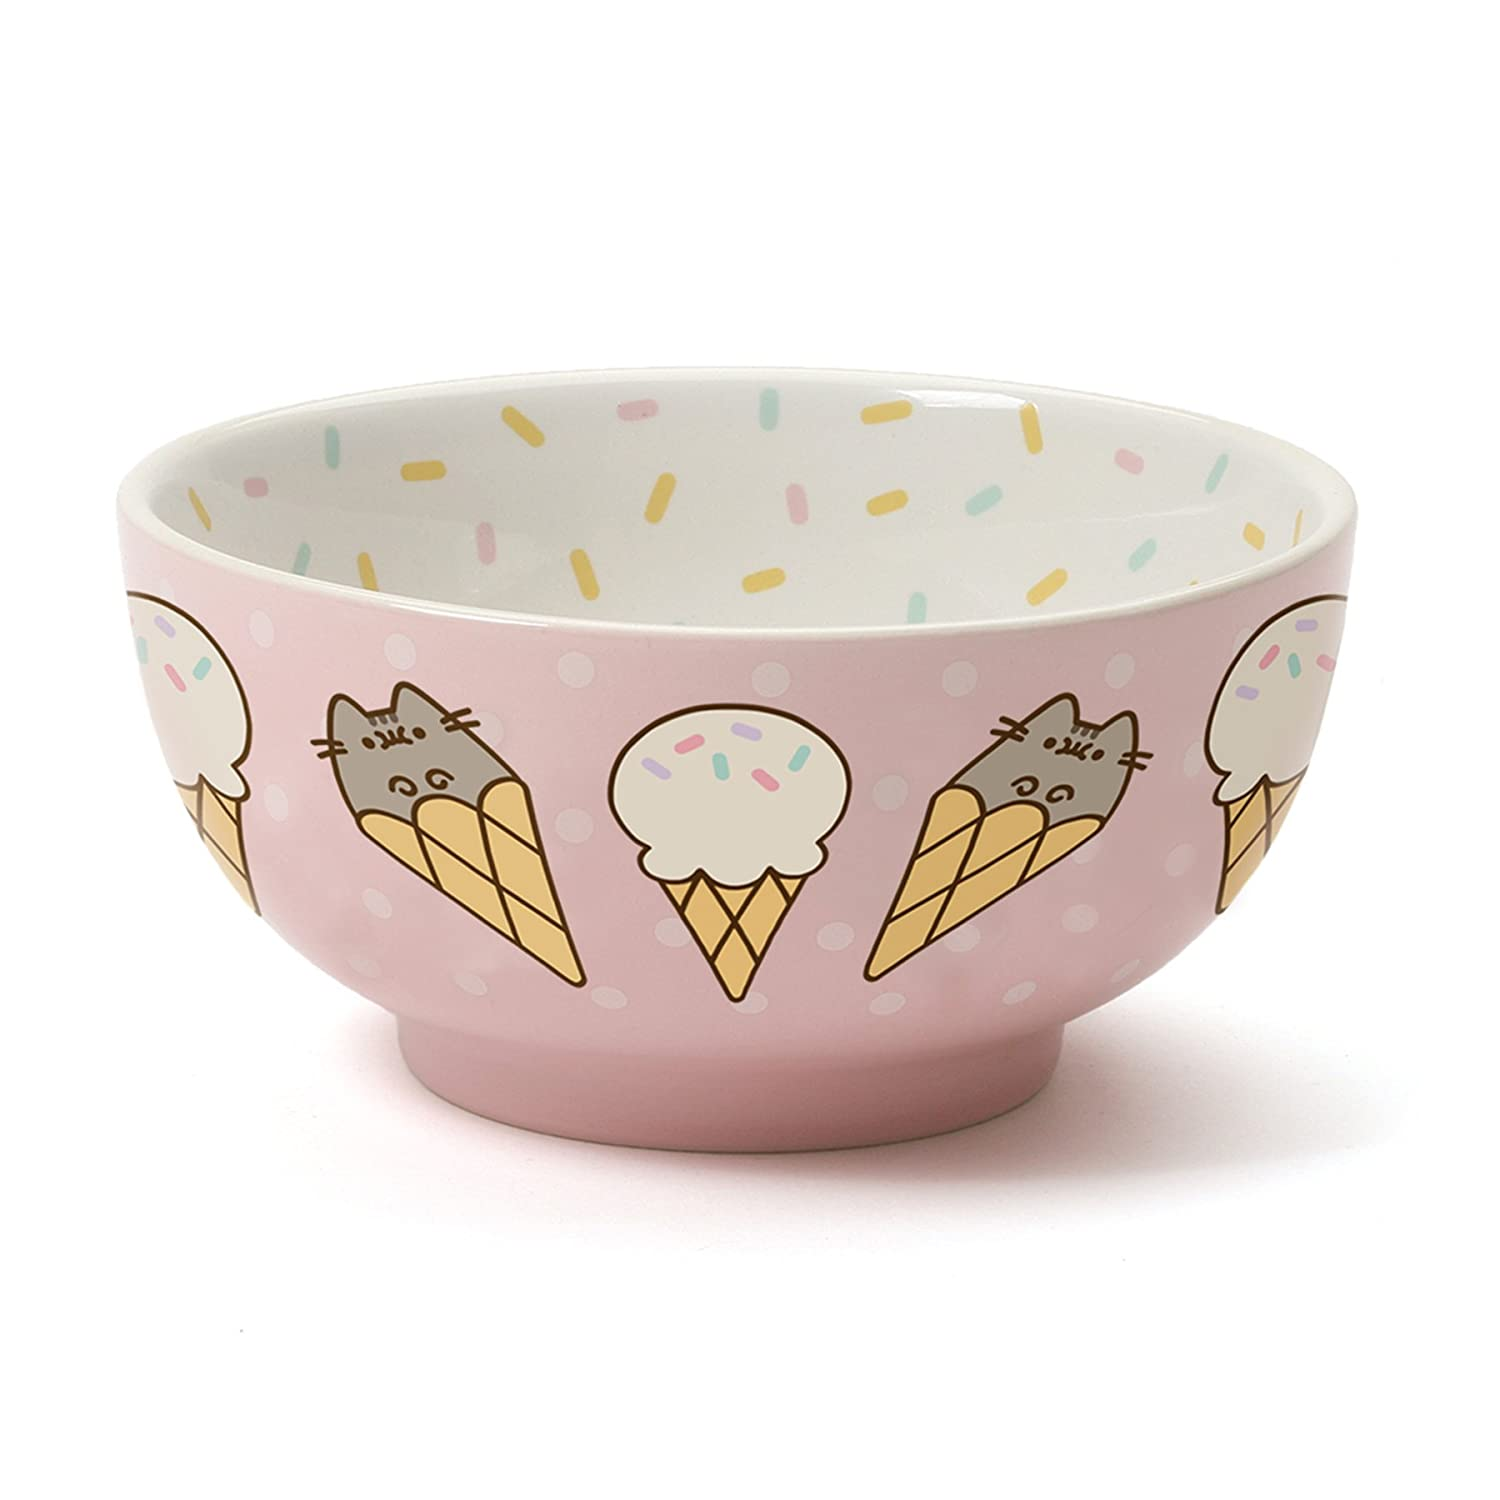 Pusheen by Our Name is Mud Stoneware Ice Cream Snack Bowl, Pink, 2.625